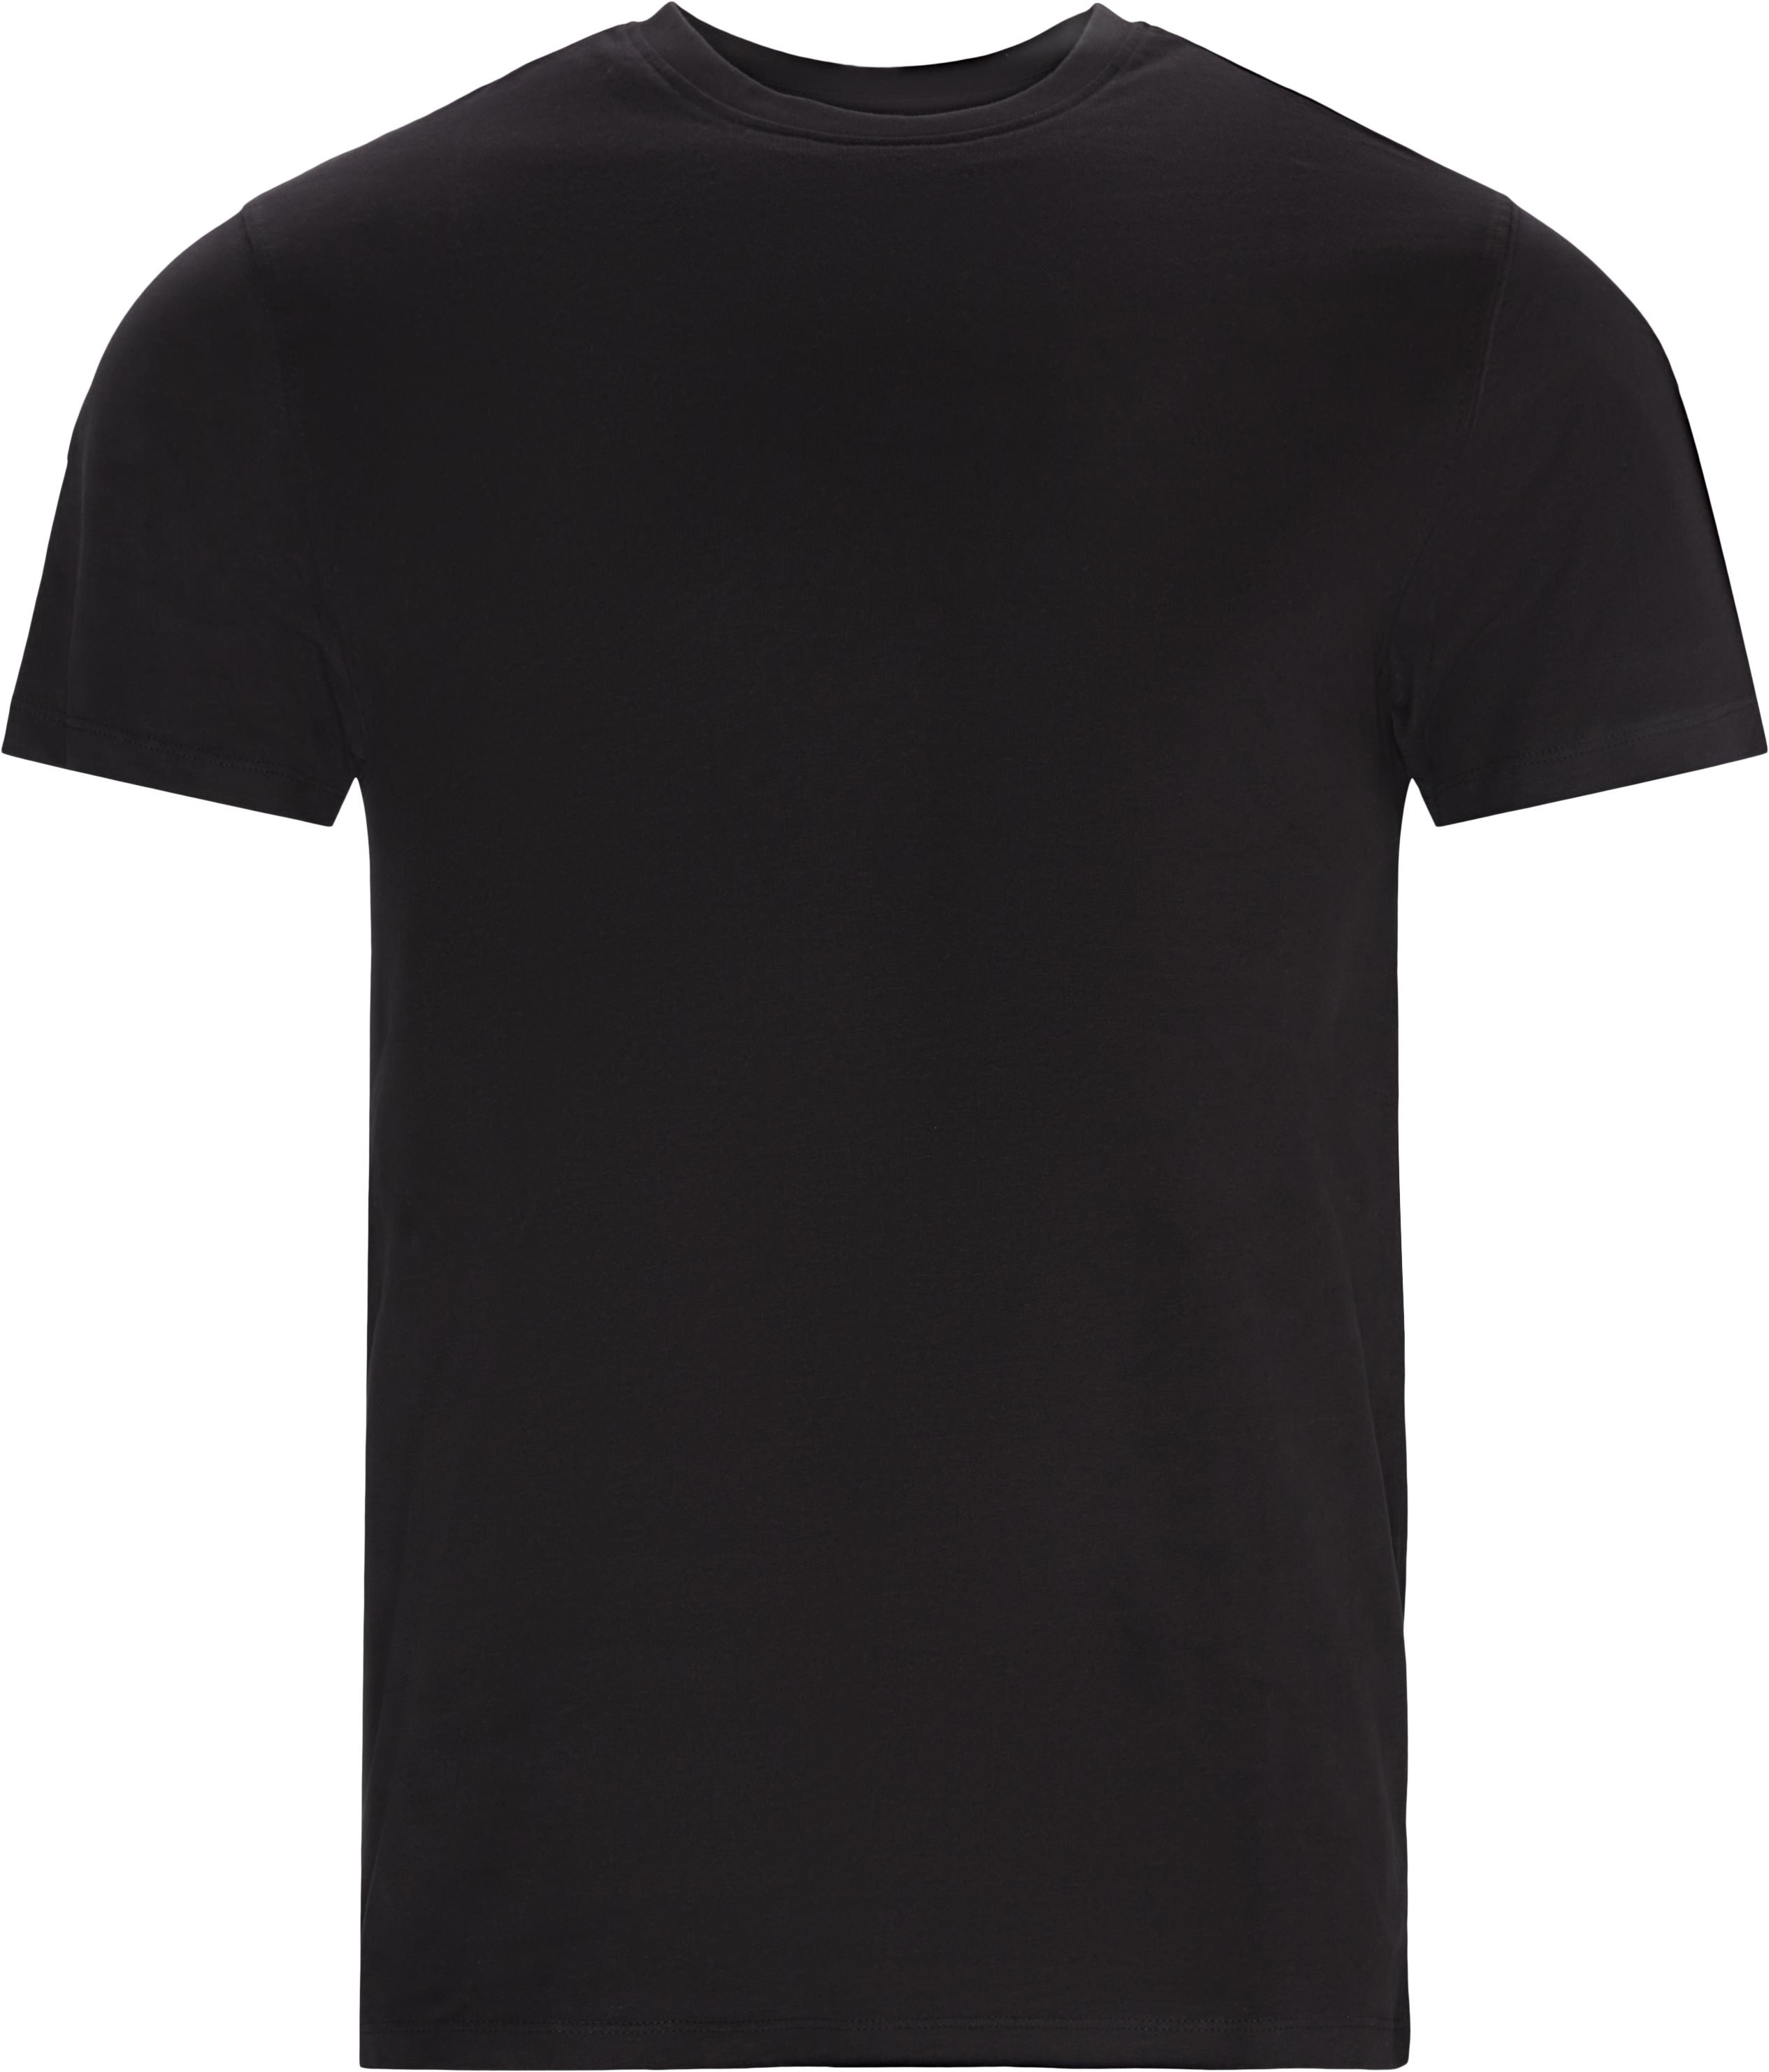 Brandon Crew Neck Tee - T-shirts - Regular - Sort